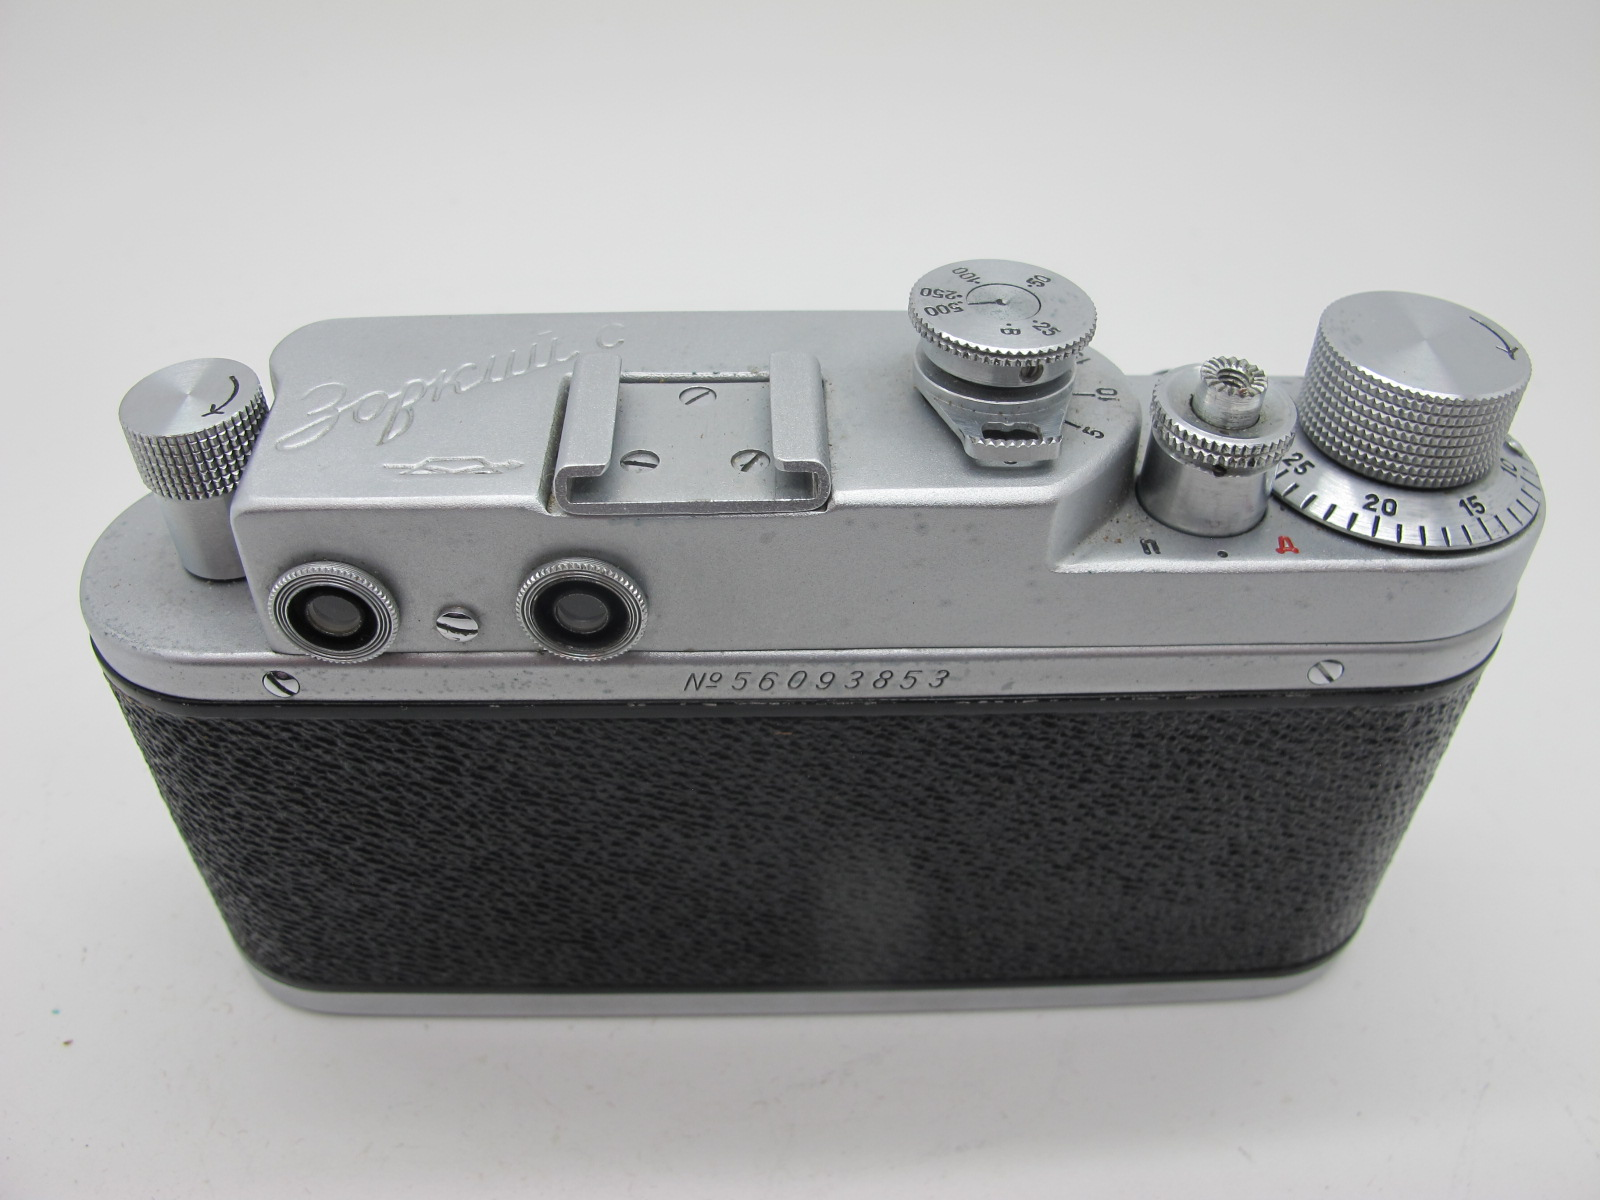 Saraber Goslar Finetta 88, Edika Flex, plus two other camera's in brown leather cases. (4) - Image 9 of 13